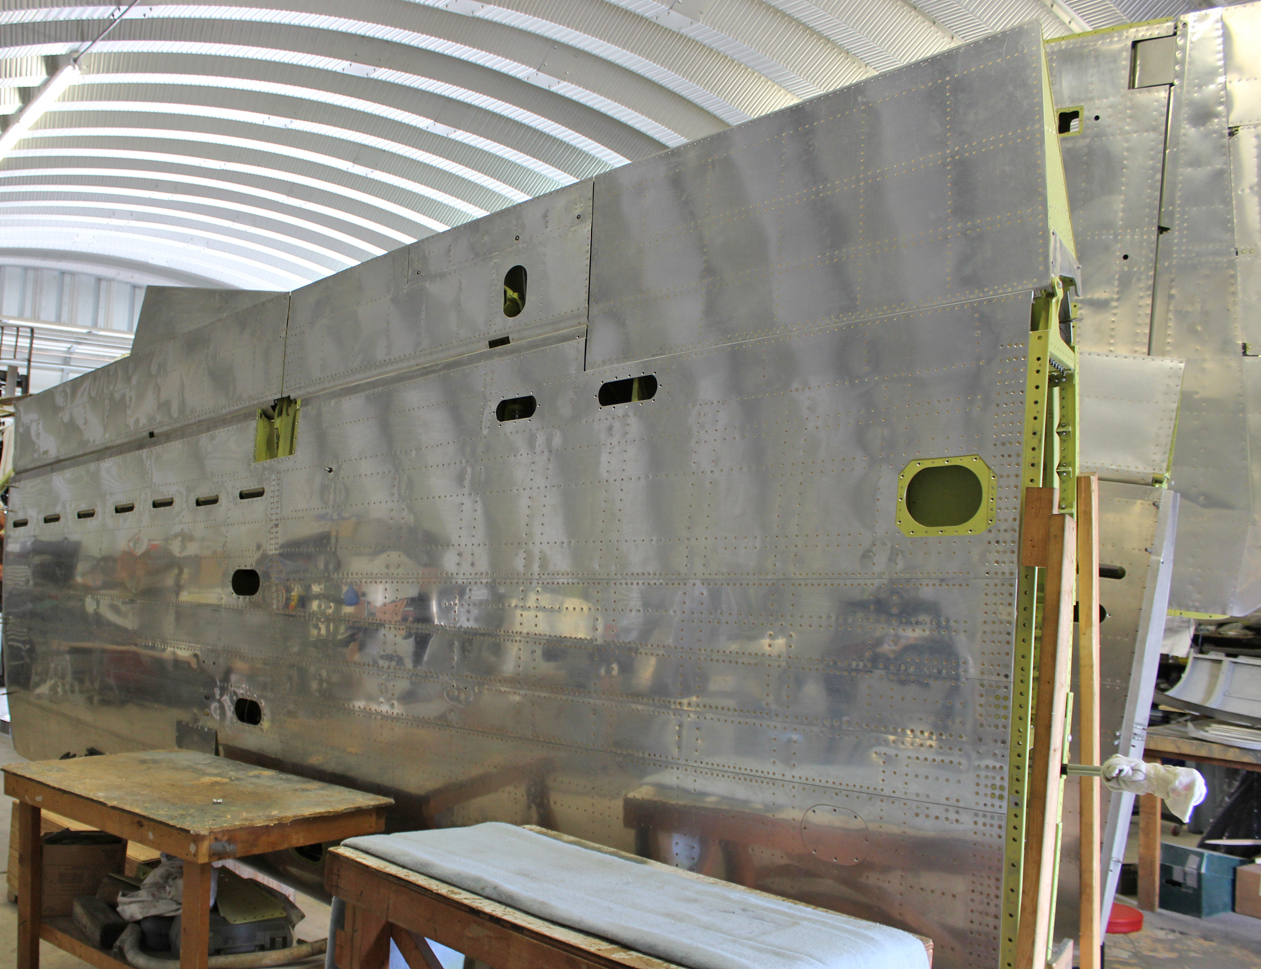 The completed outer wing panel. (photo via Tom Reilly)